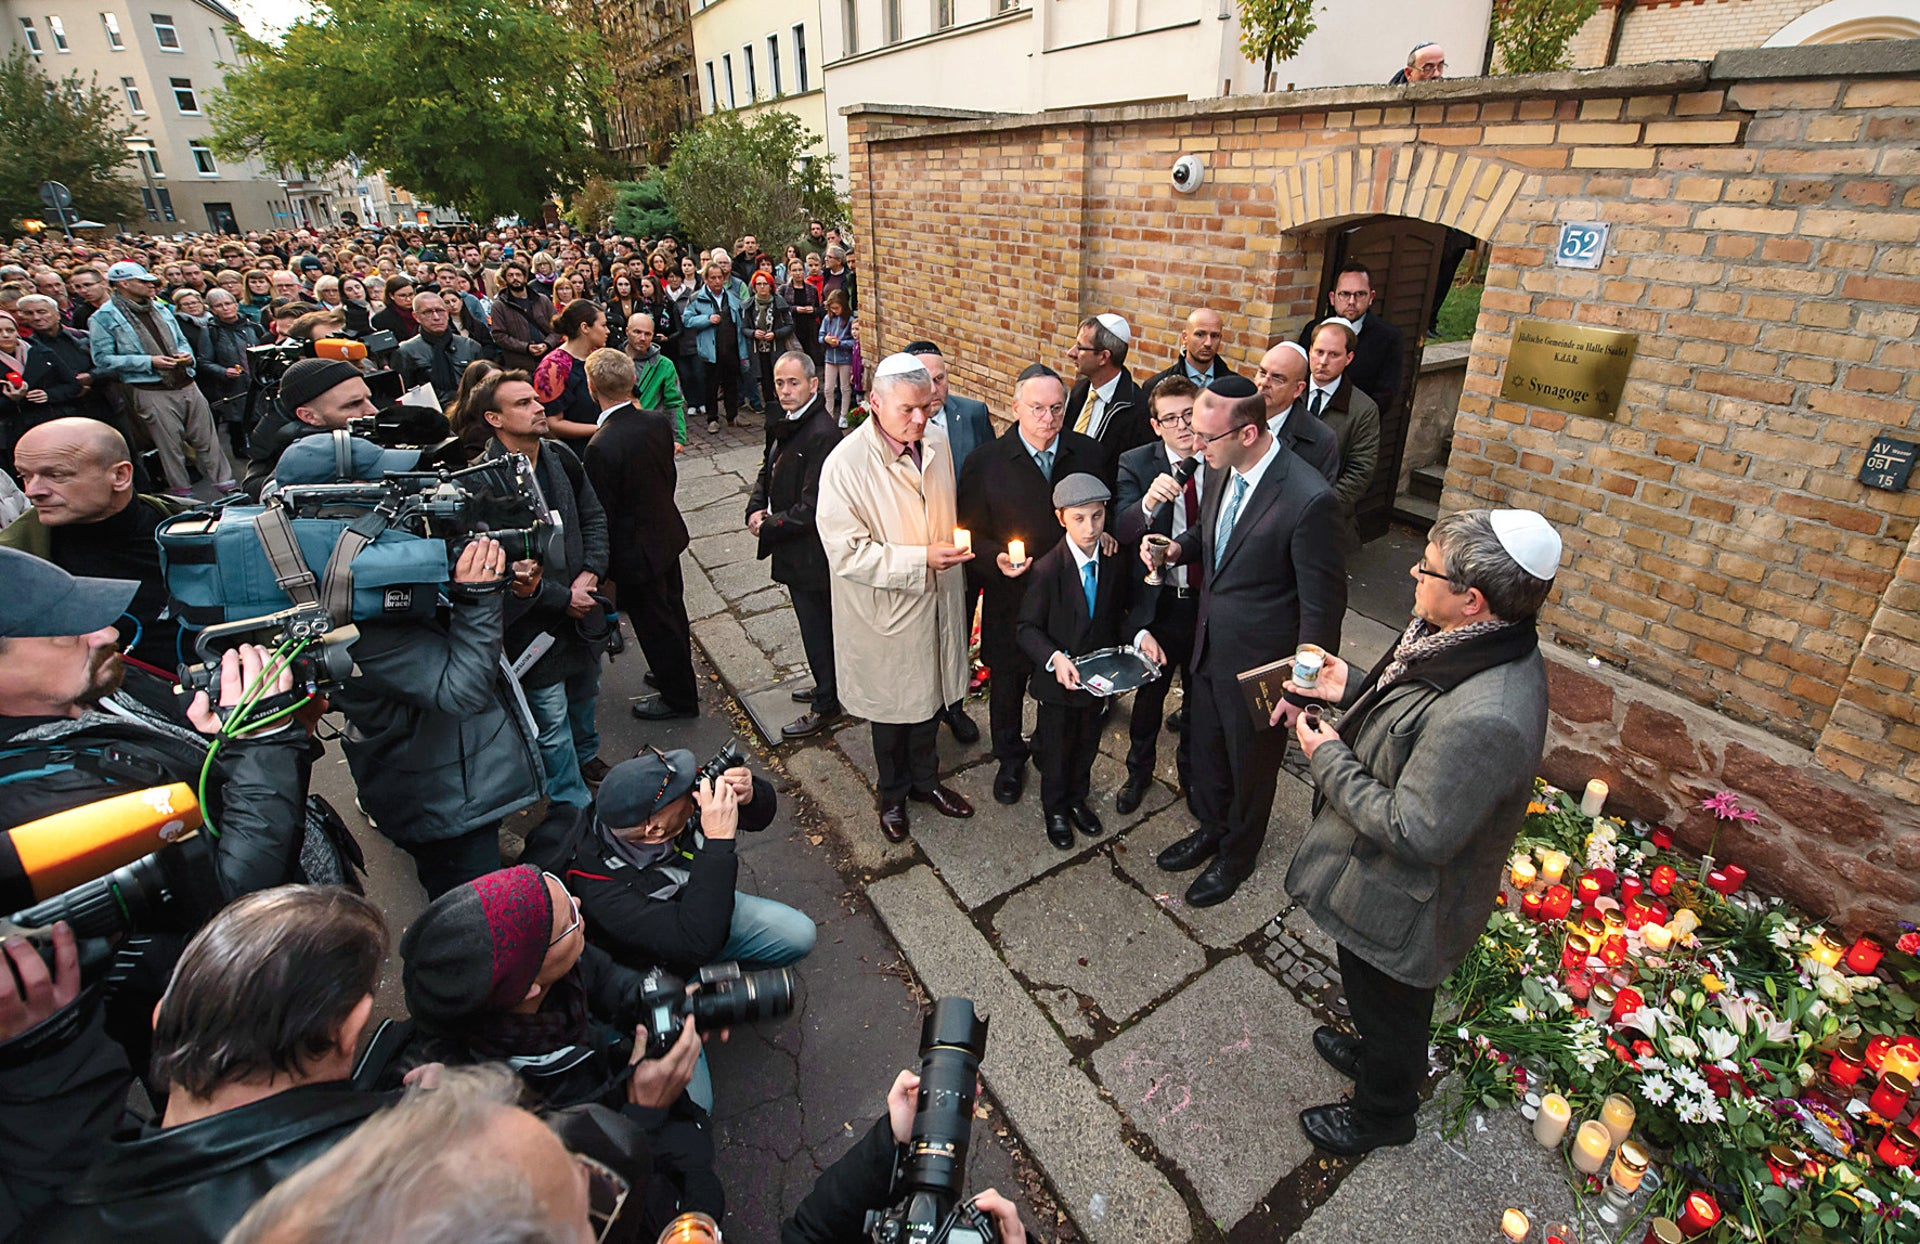 A community prayer session outside the synagogue in Halle, Germany, where a right-wing extremist launched an attack on Yom Kippur, killing two.